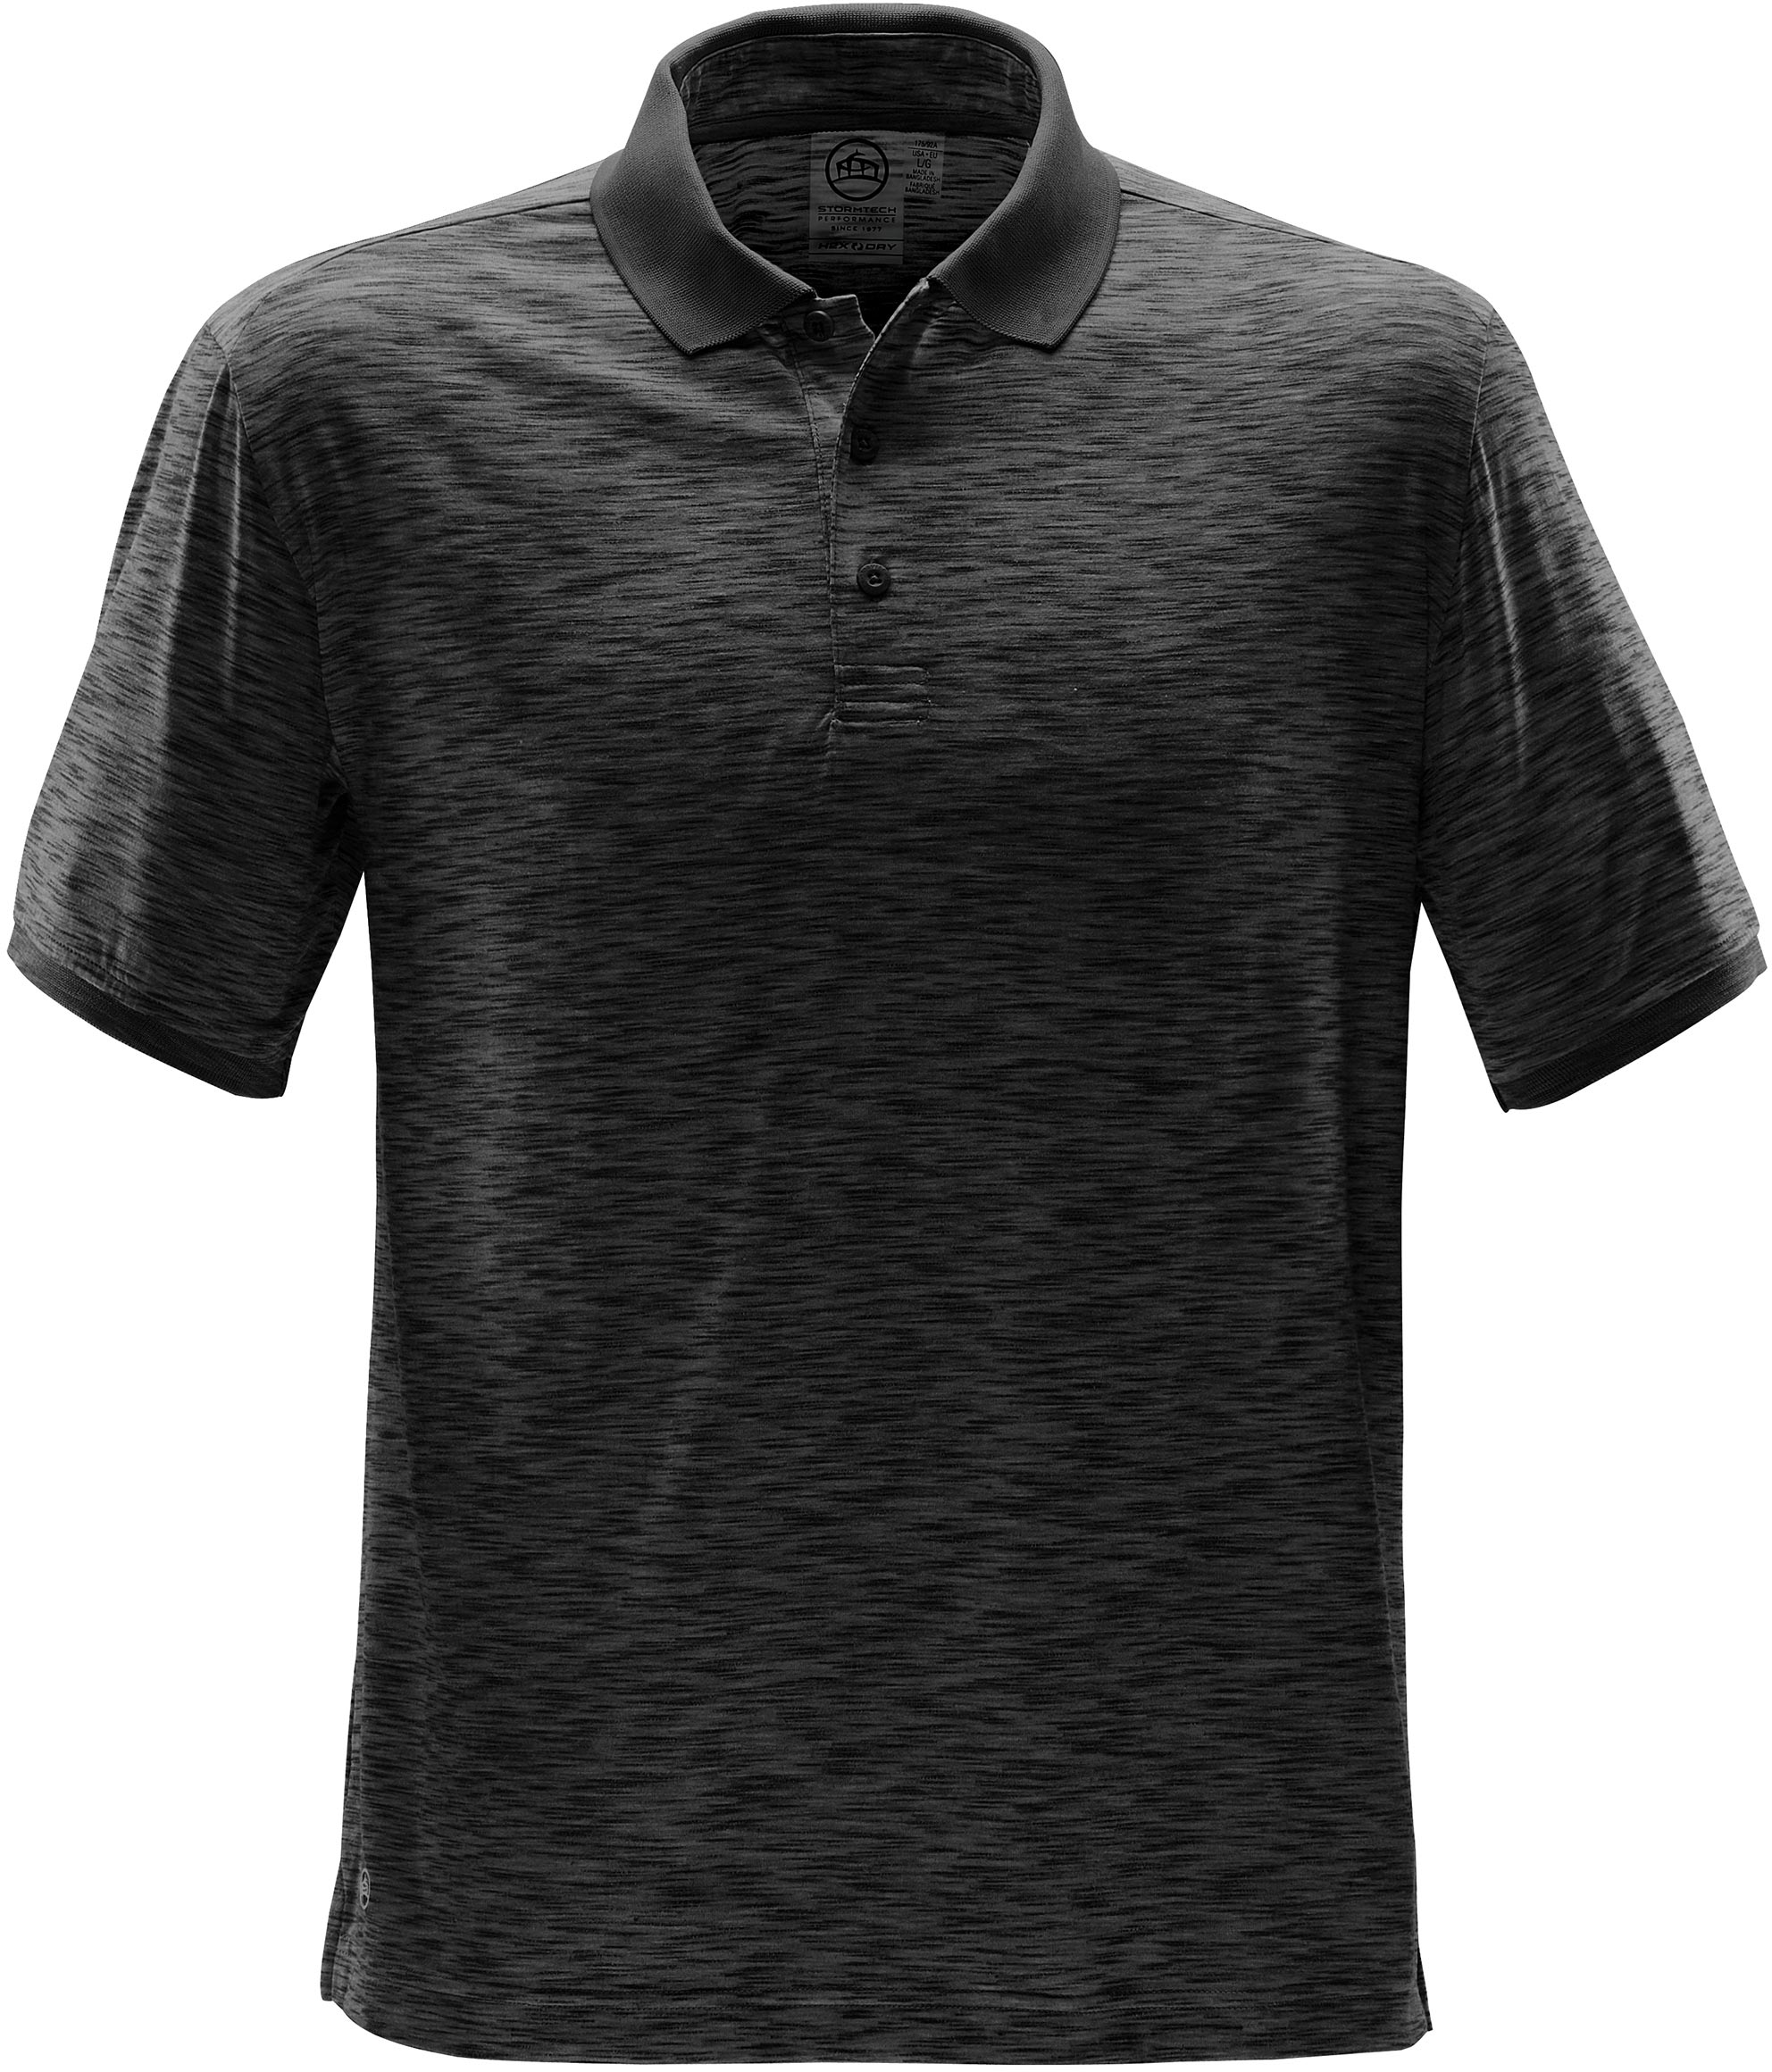 Stormtech PR-1 - Men's Thresher Performance Polo